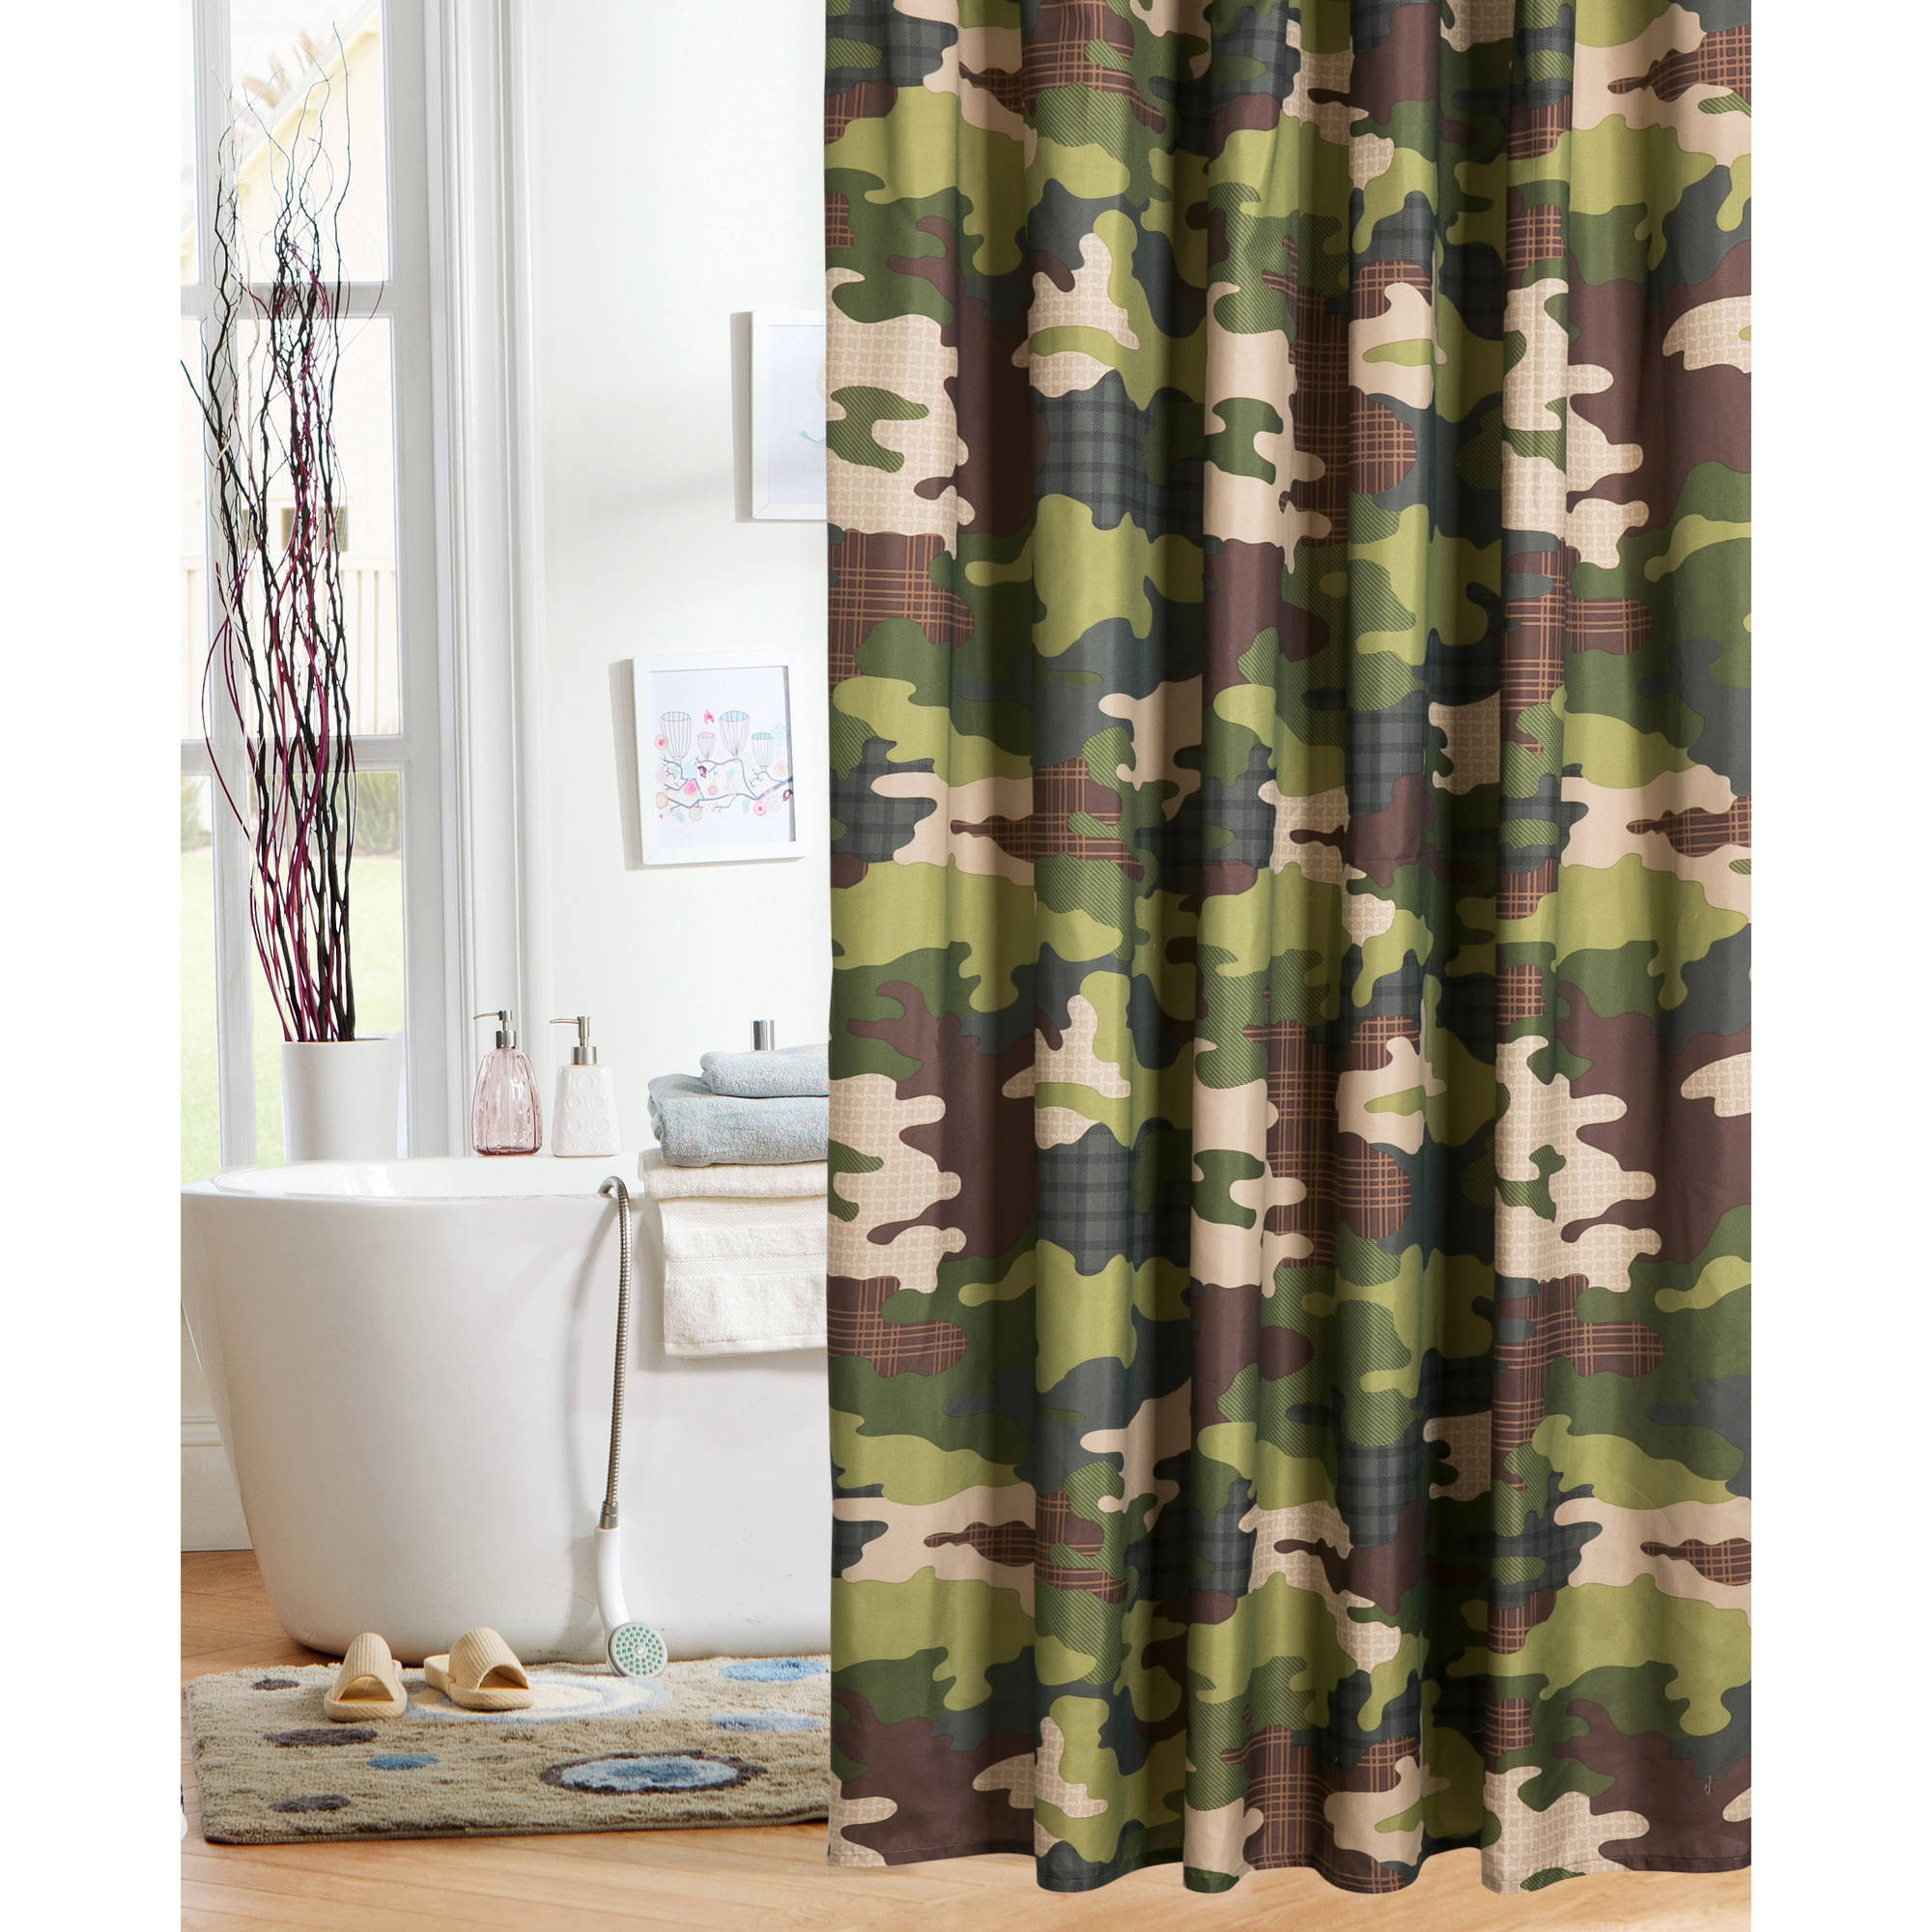 Mainstays Kids Camo Shower Curtain - Walmart.com